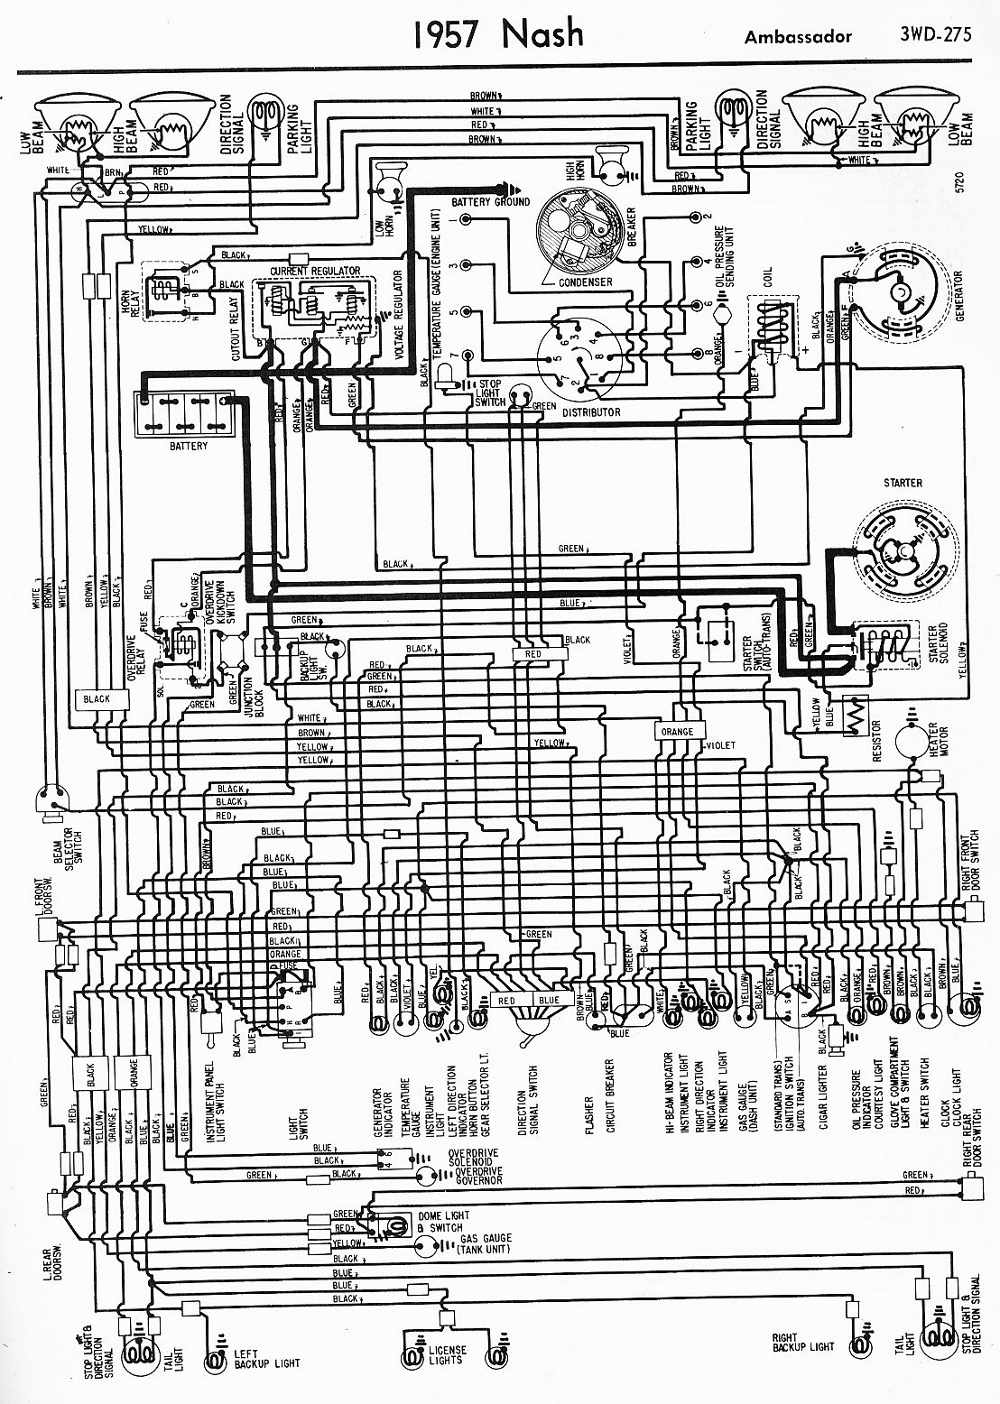 Wiring Diagram For 1950 Nash Simple Guide About Taco Expandable Relay Hudson